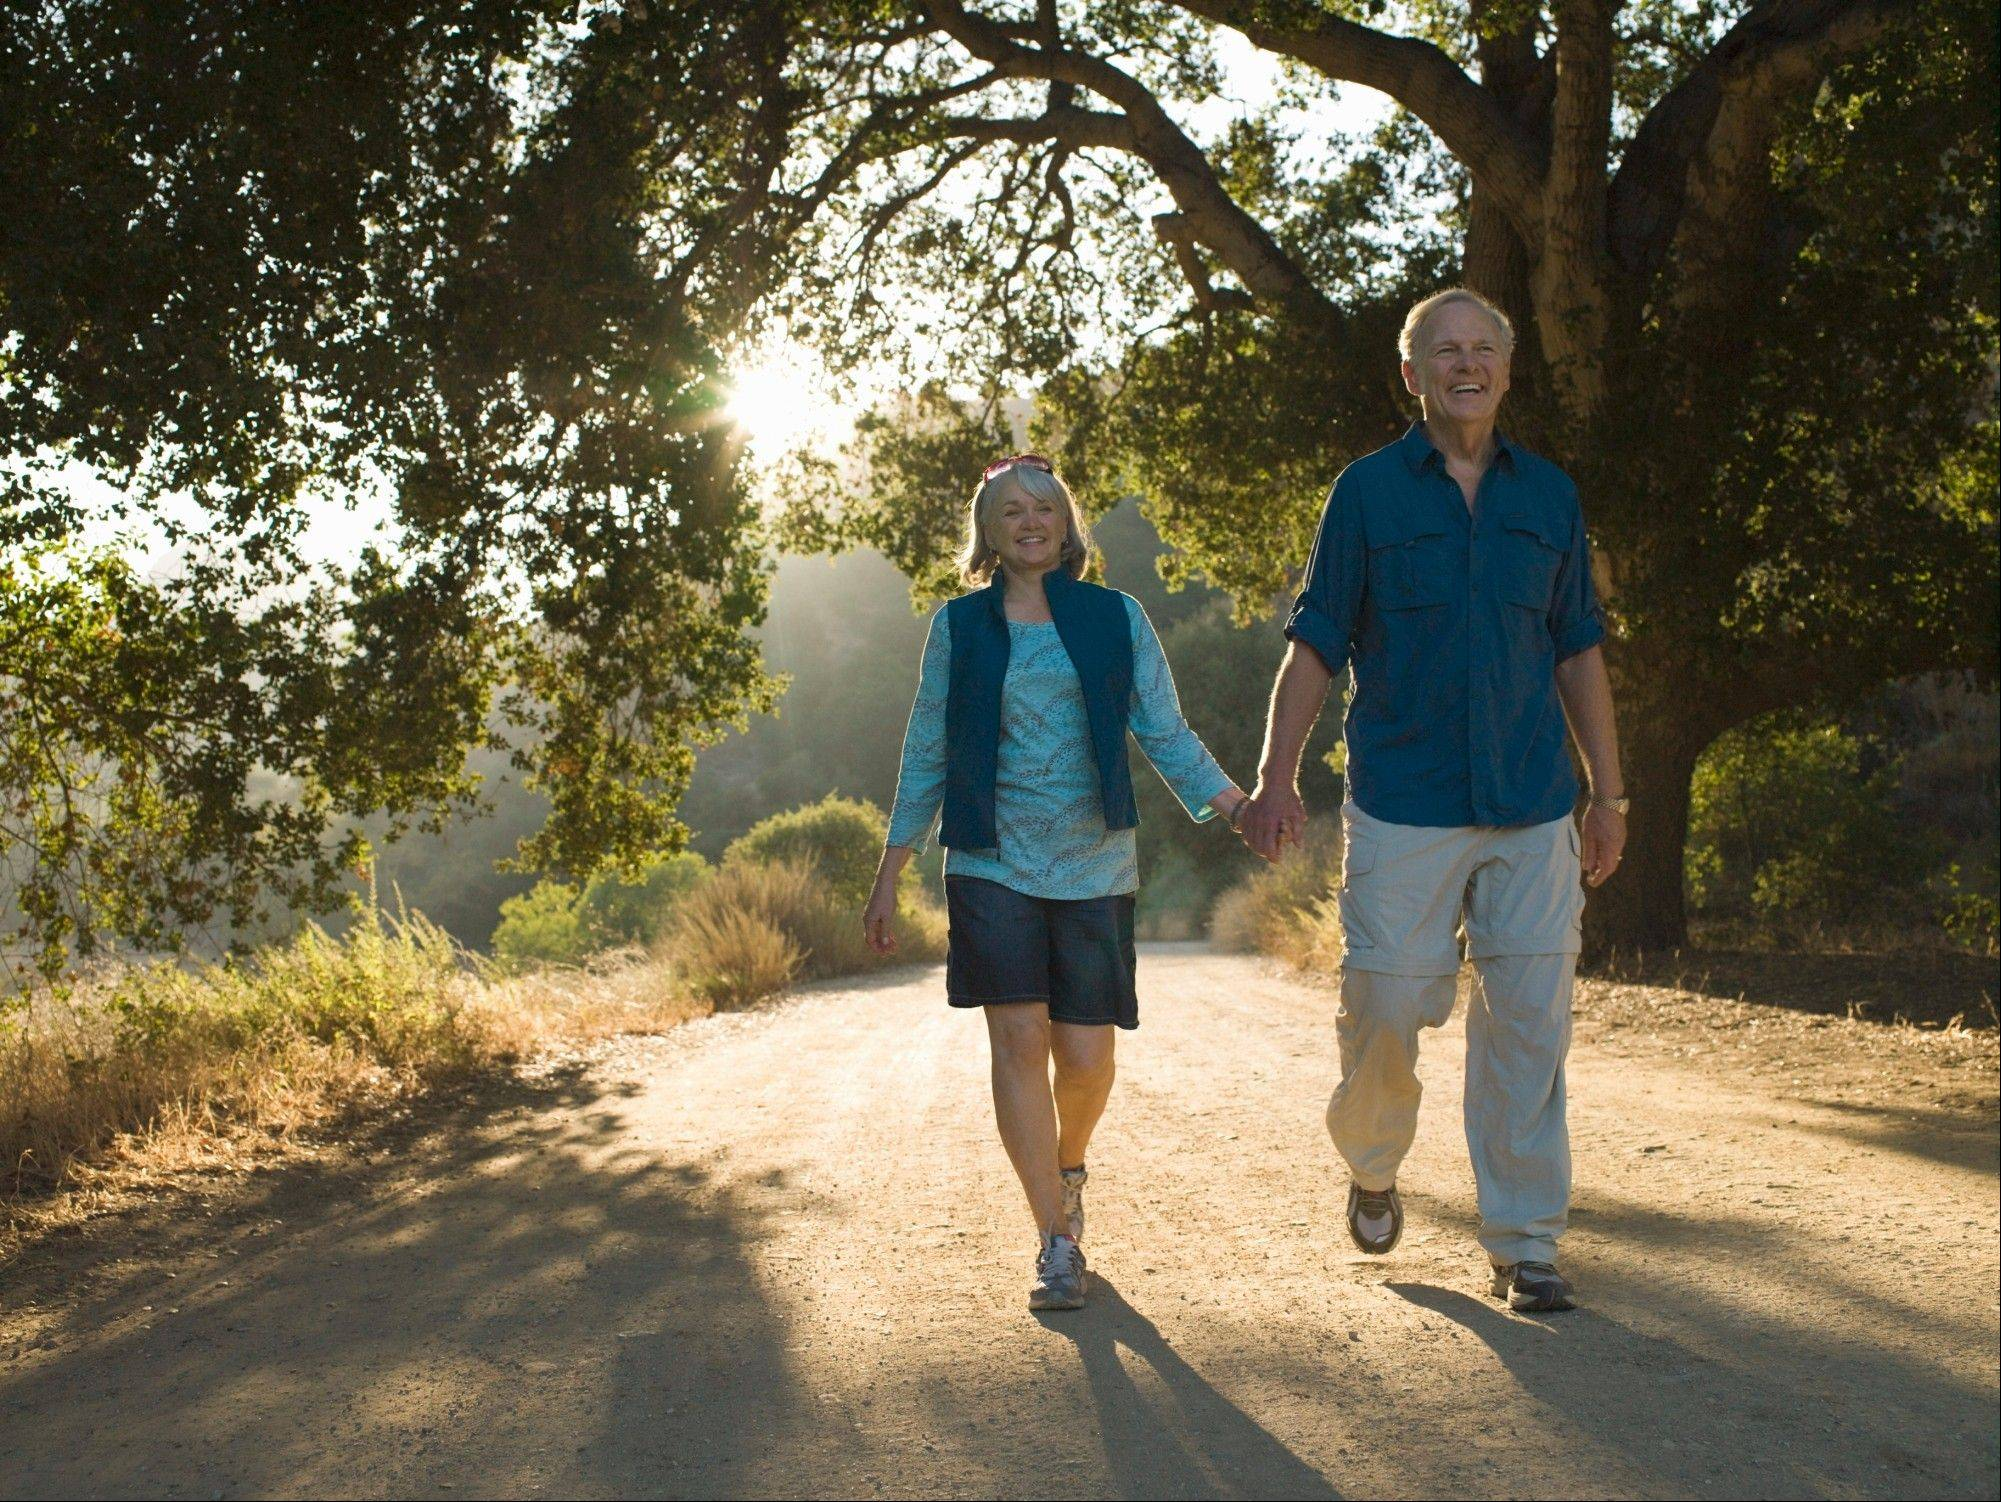 People often find that quality of life improves when they turn 60.